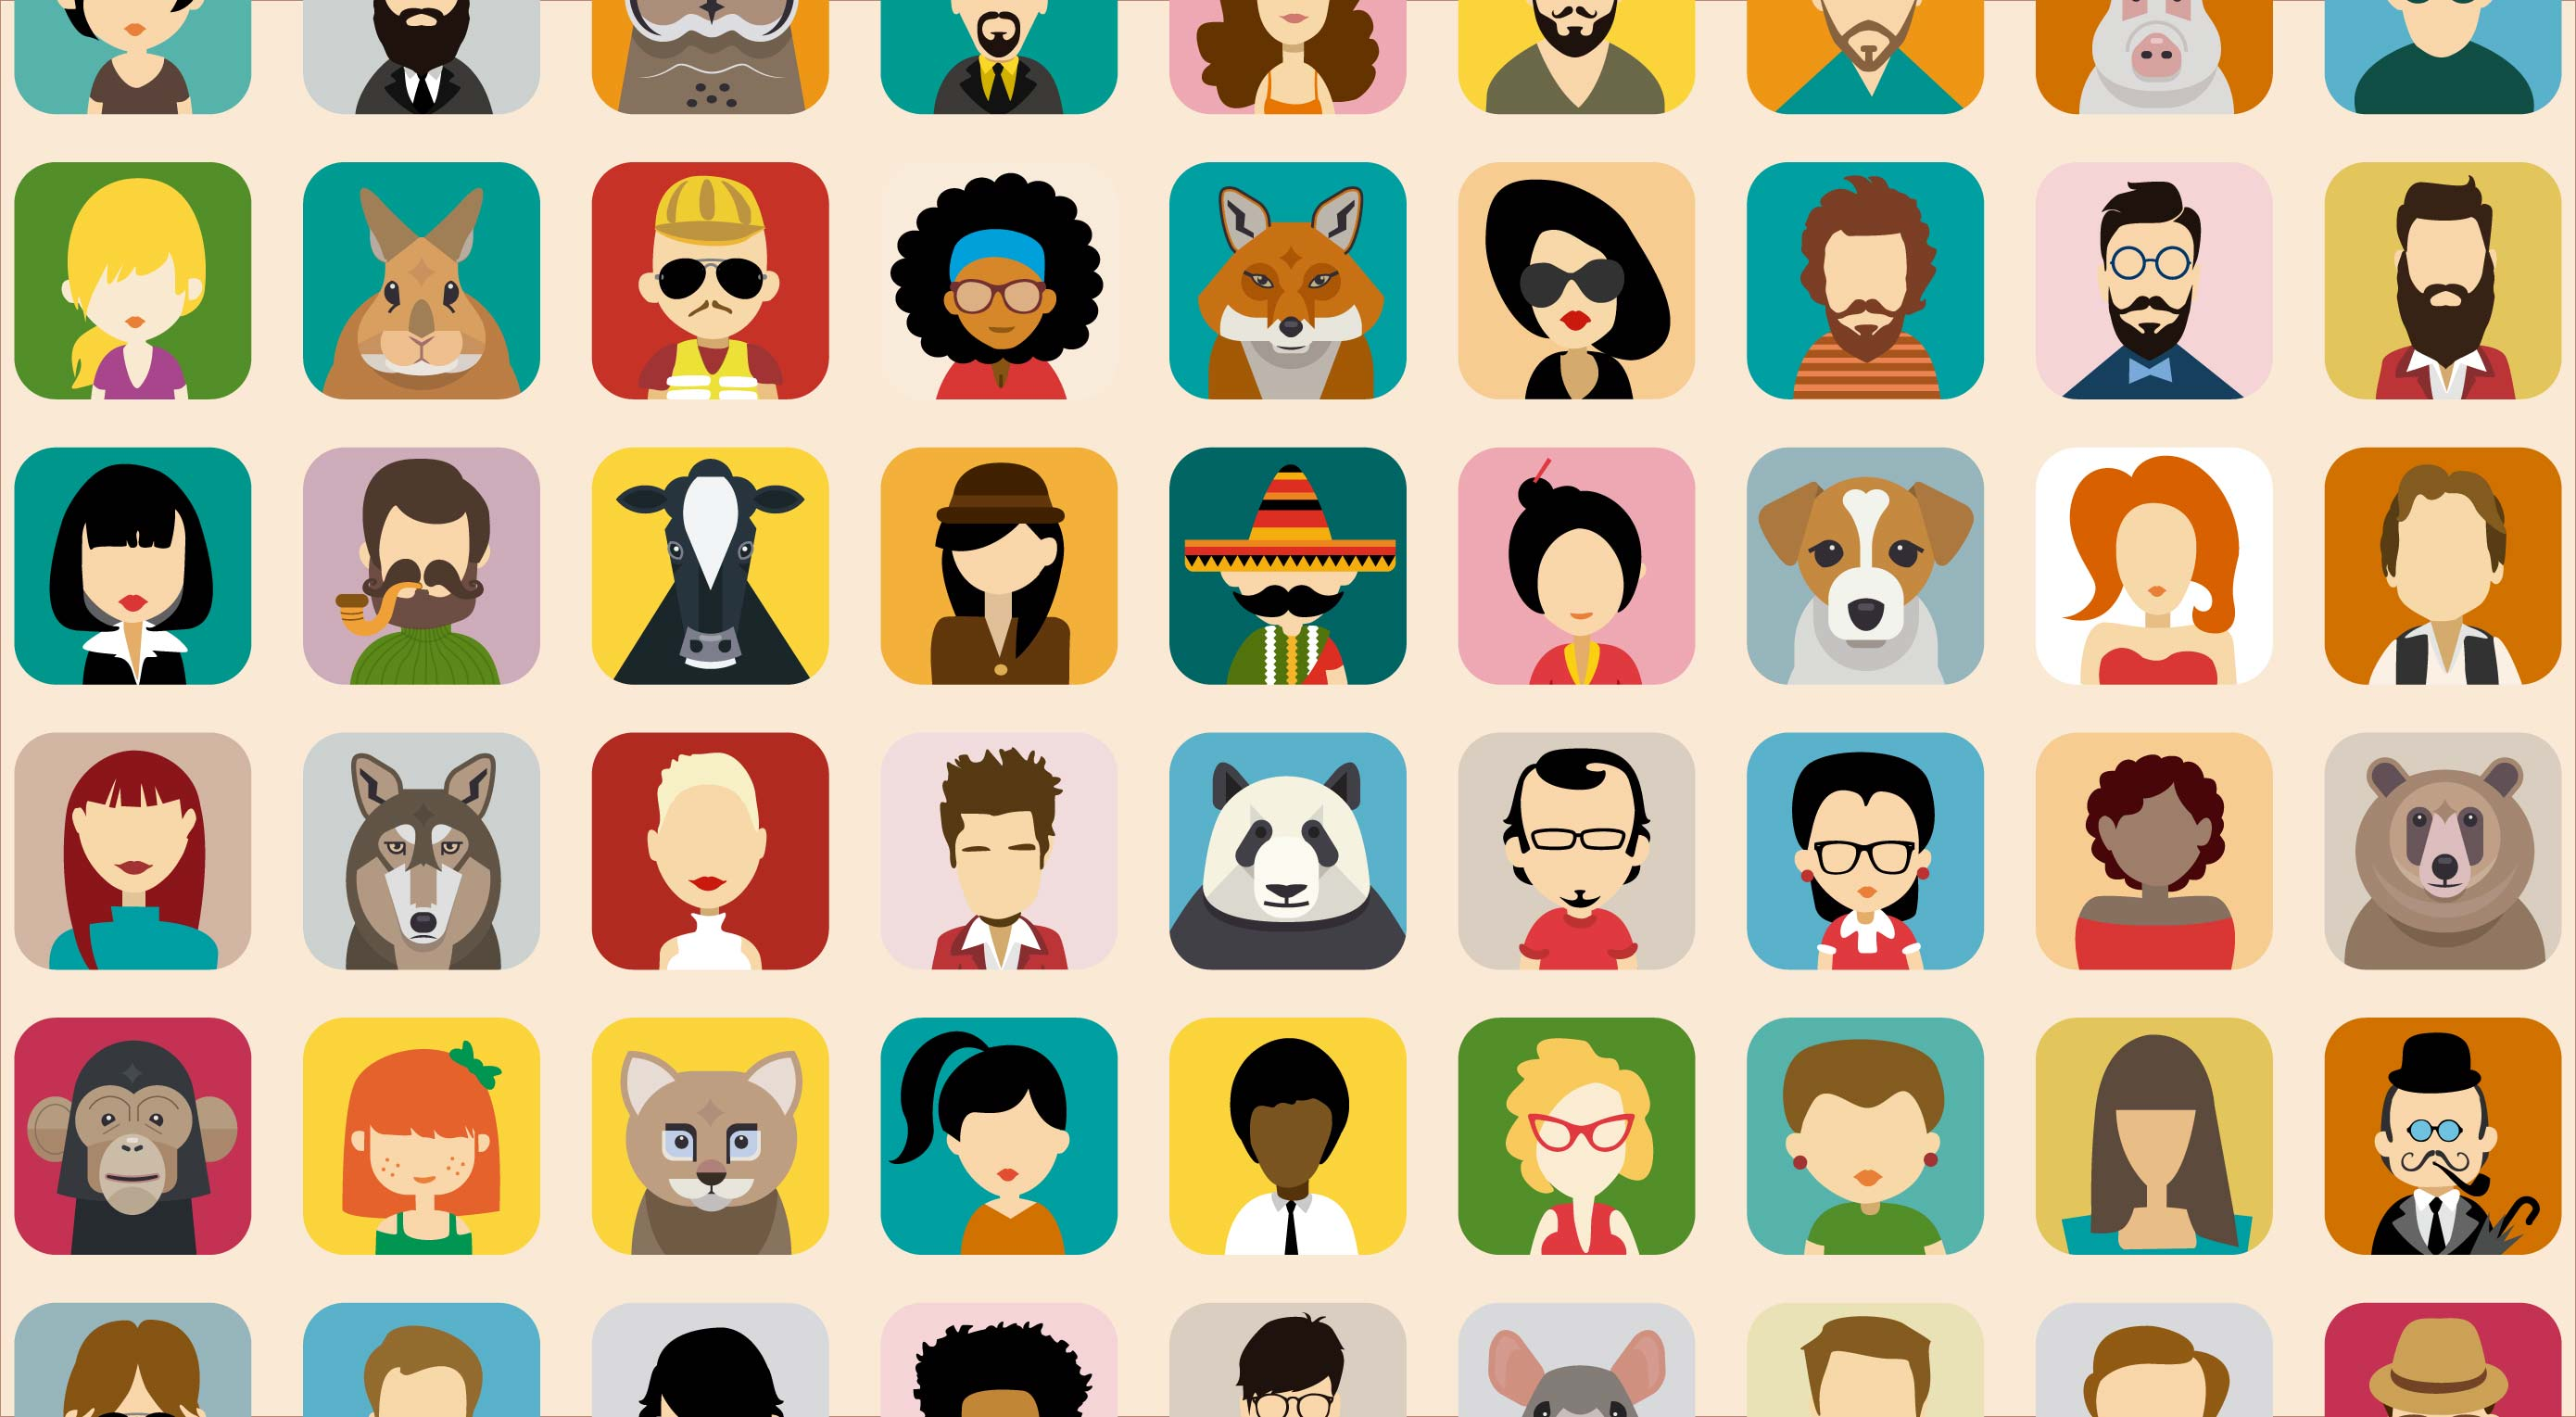 Free download: Avatar vector collection